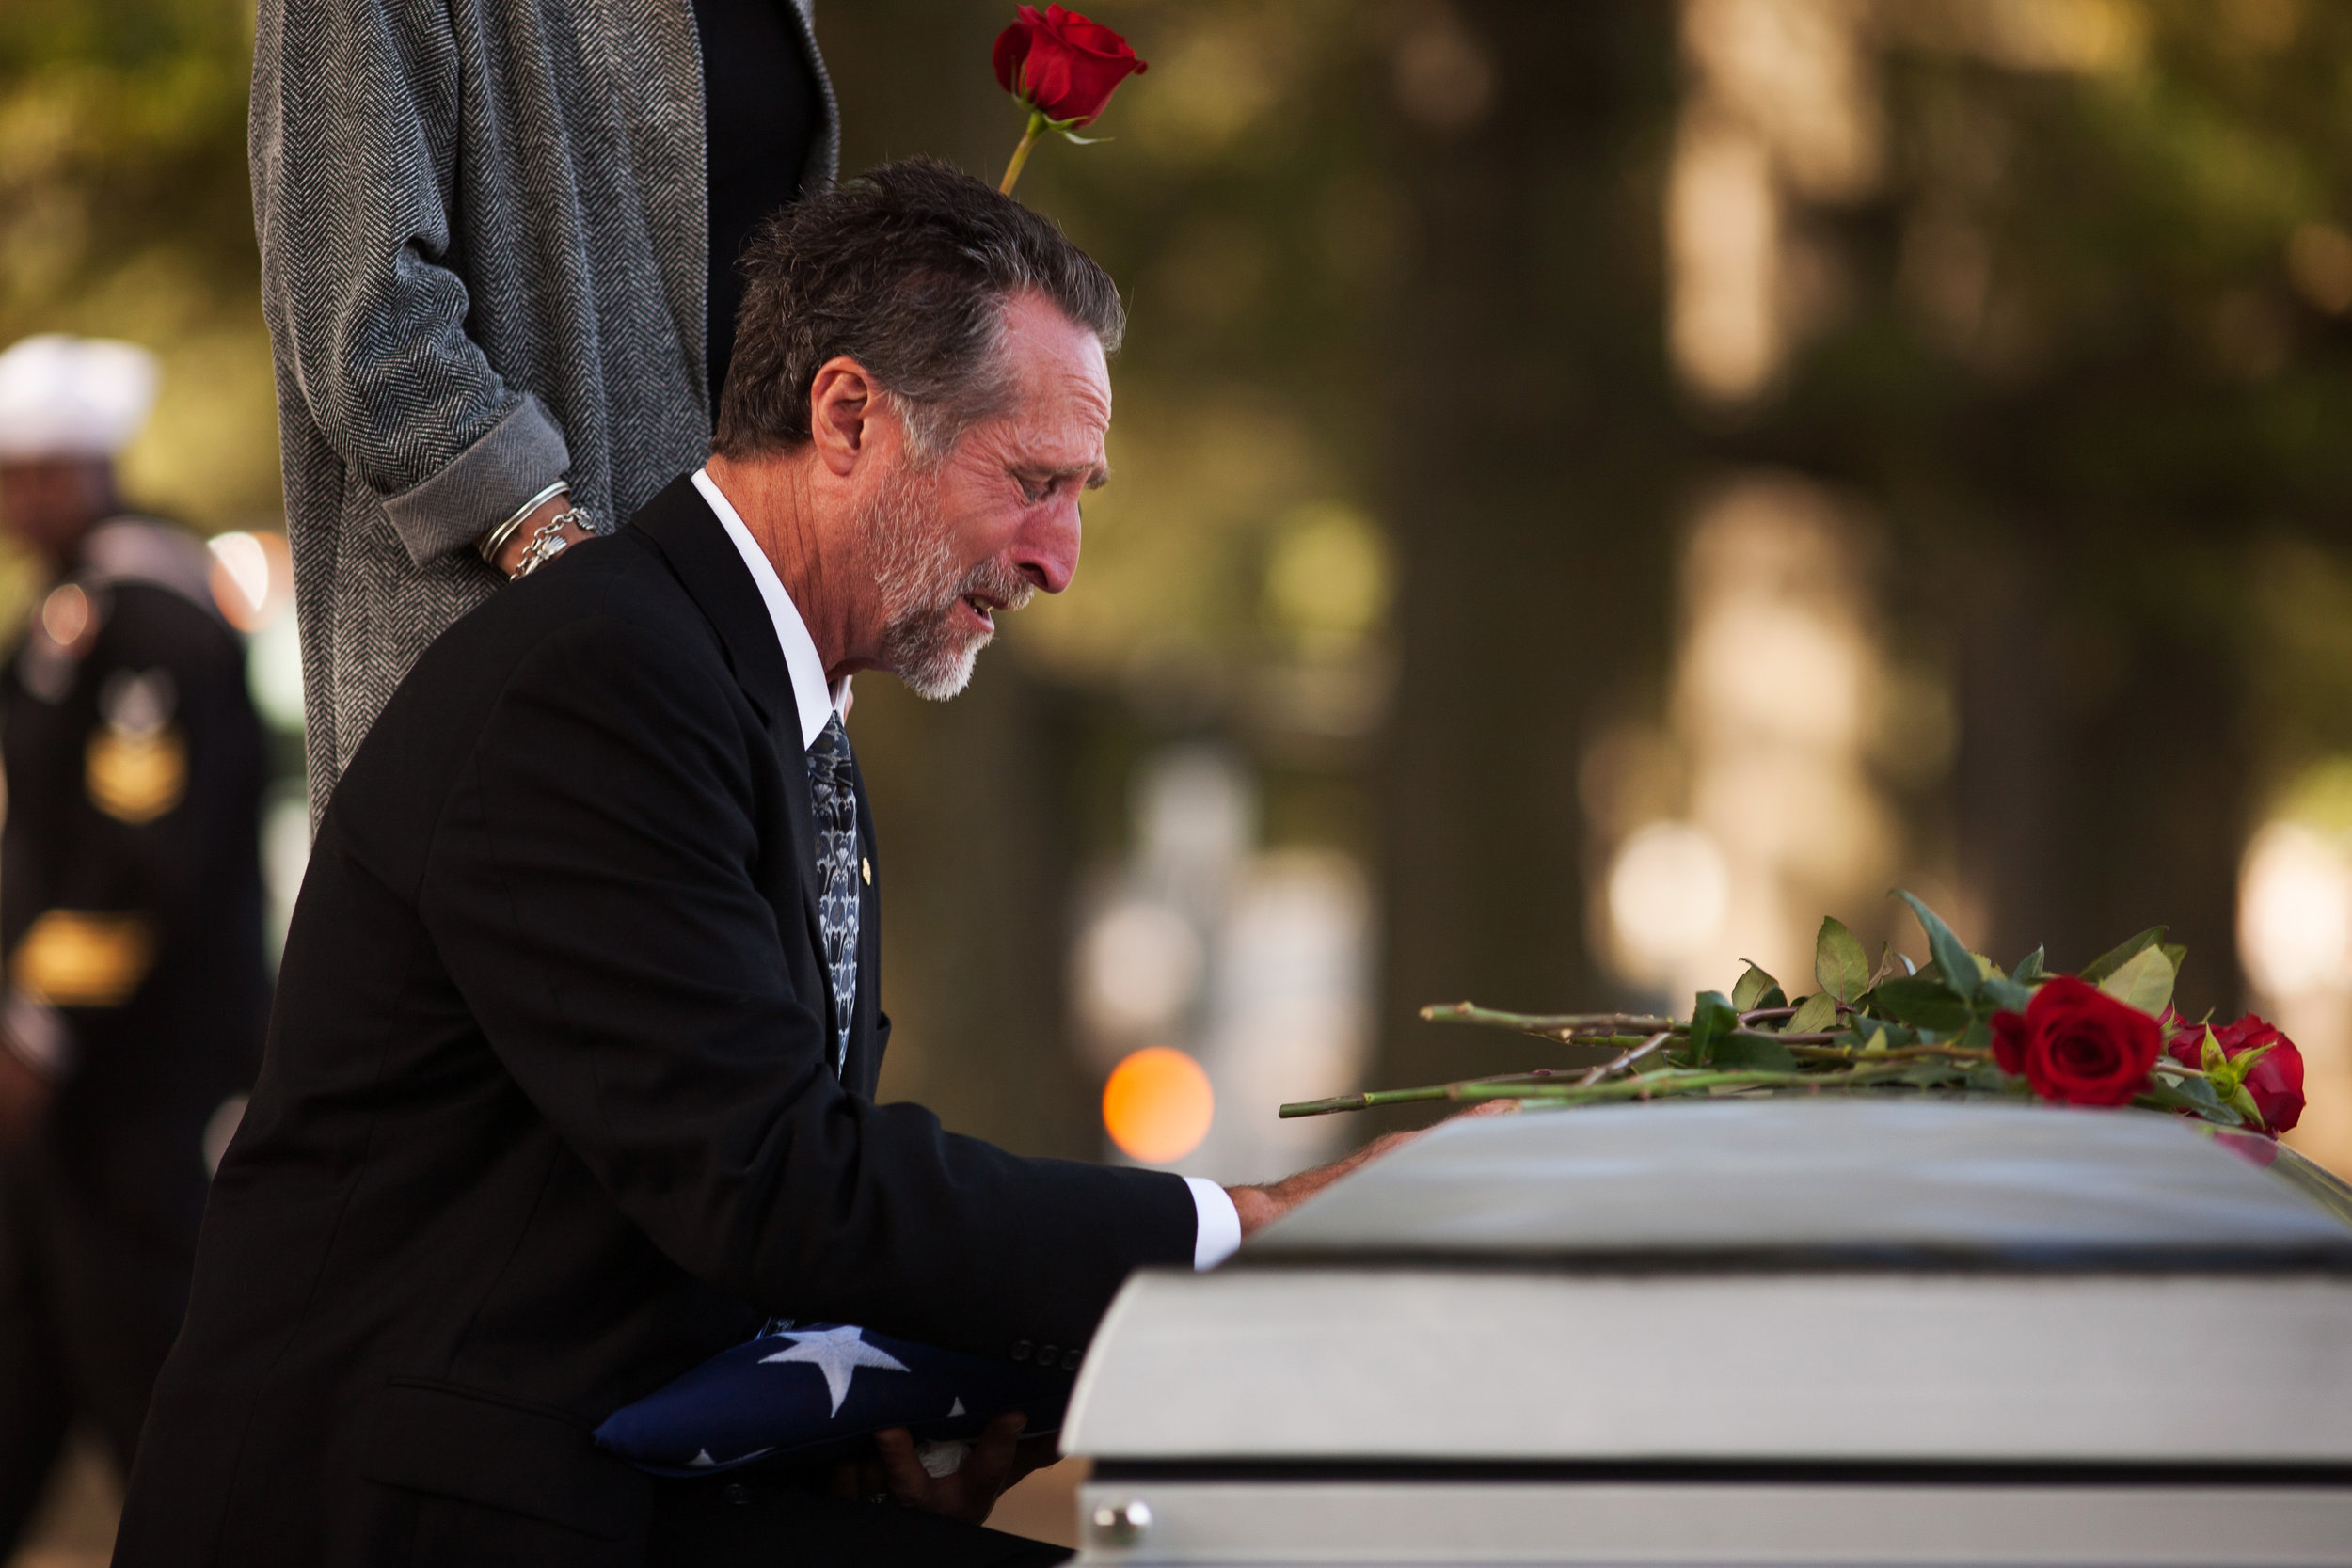 WASHINGTON D.C., October 05, 2017-- Kevin's father made several returns to the casket, unable to leave his son's side. On the third return, he fell to his knees and wept-- the agony of the loss to heavy to bear in the moment.  Photo by Taylor Mickal